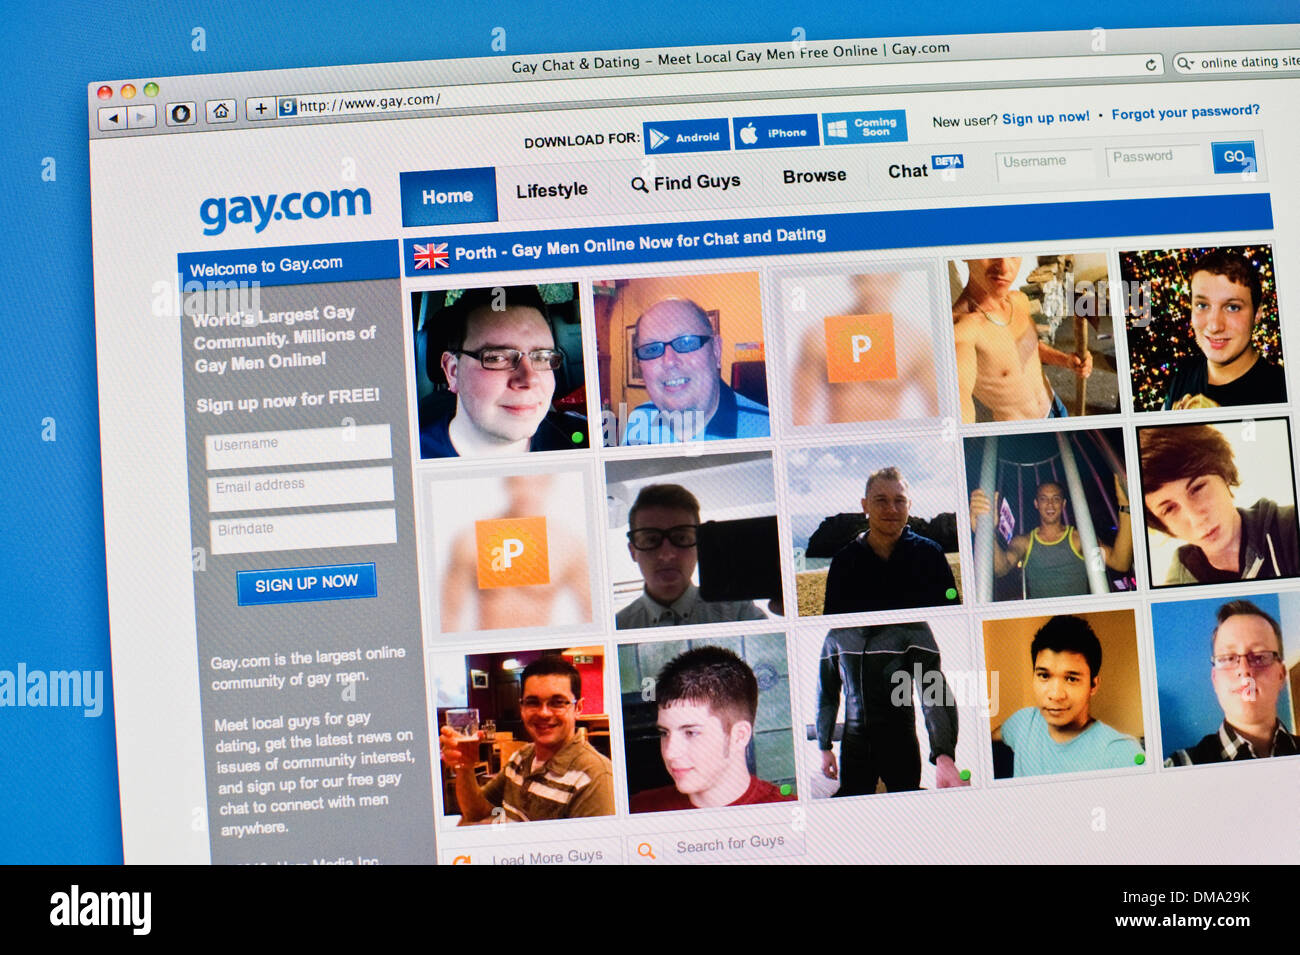 Gay internet dating sites